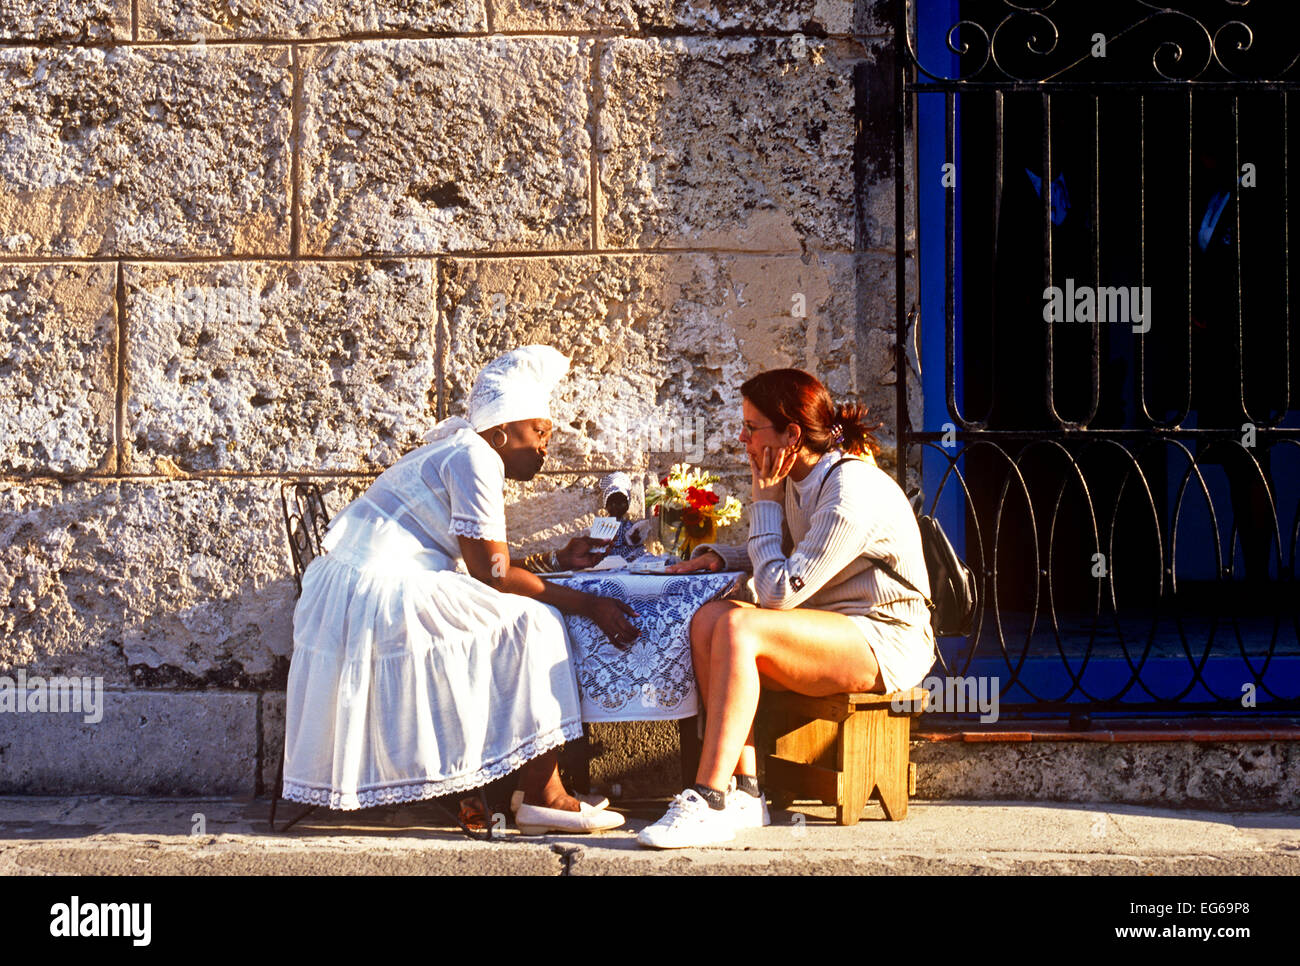 Voodoo Fortune Teller Giving A Reading to a Tourist in Havana Cuba - Stock Image